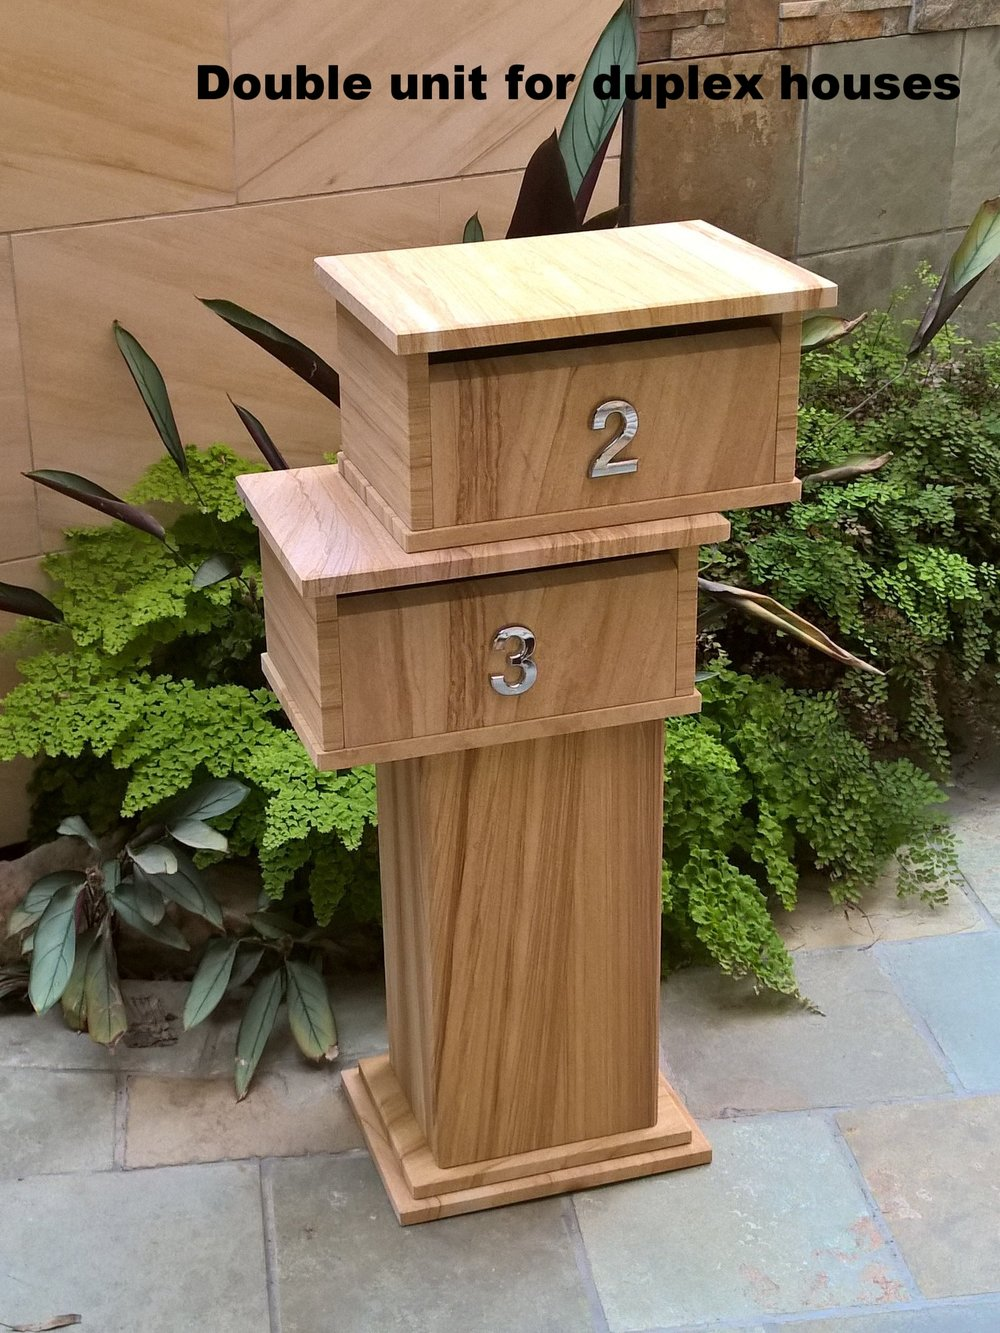 6a. Dual Sandstone letterbox about 1000mm high fit A4 envelopes. Cost $750